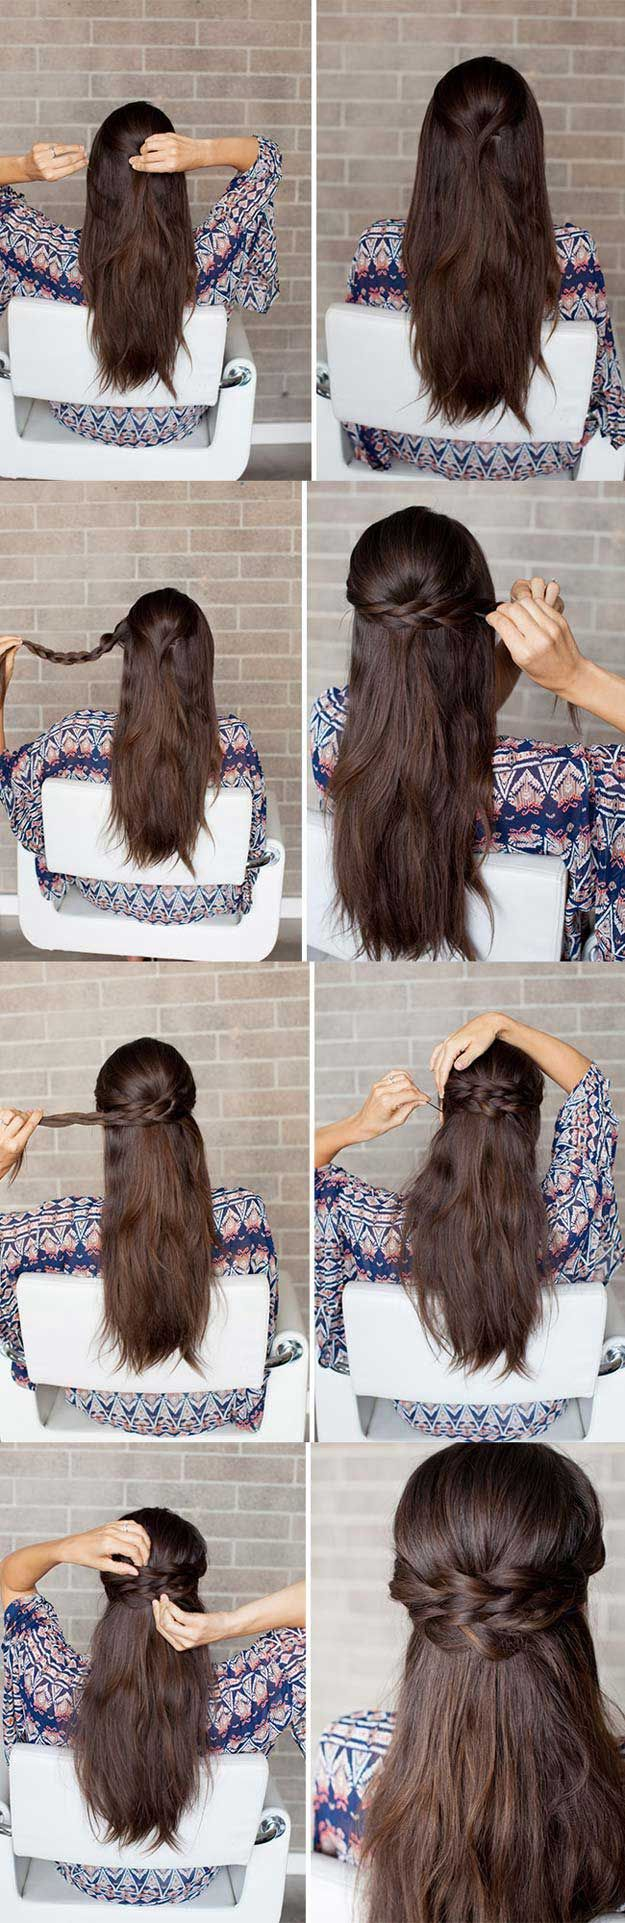 31 Amazing Half Up Half Down Hairstyles For Long Hair The Goddess In 2020 Long Hair Styles Braids For Long Hair Down Hairstyles For Long Hair